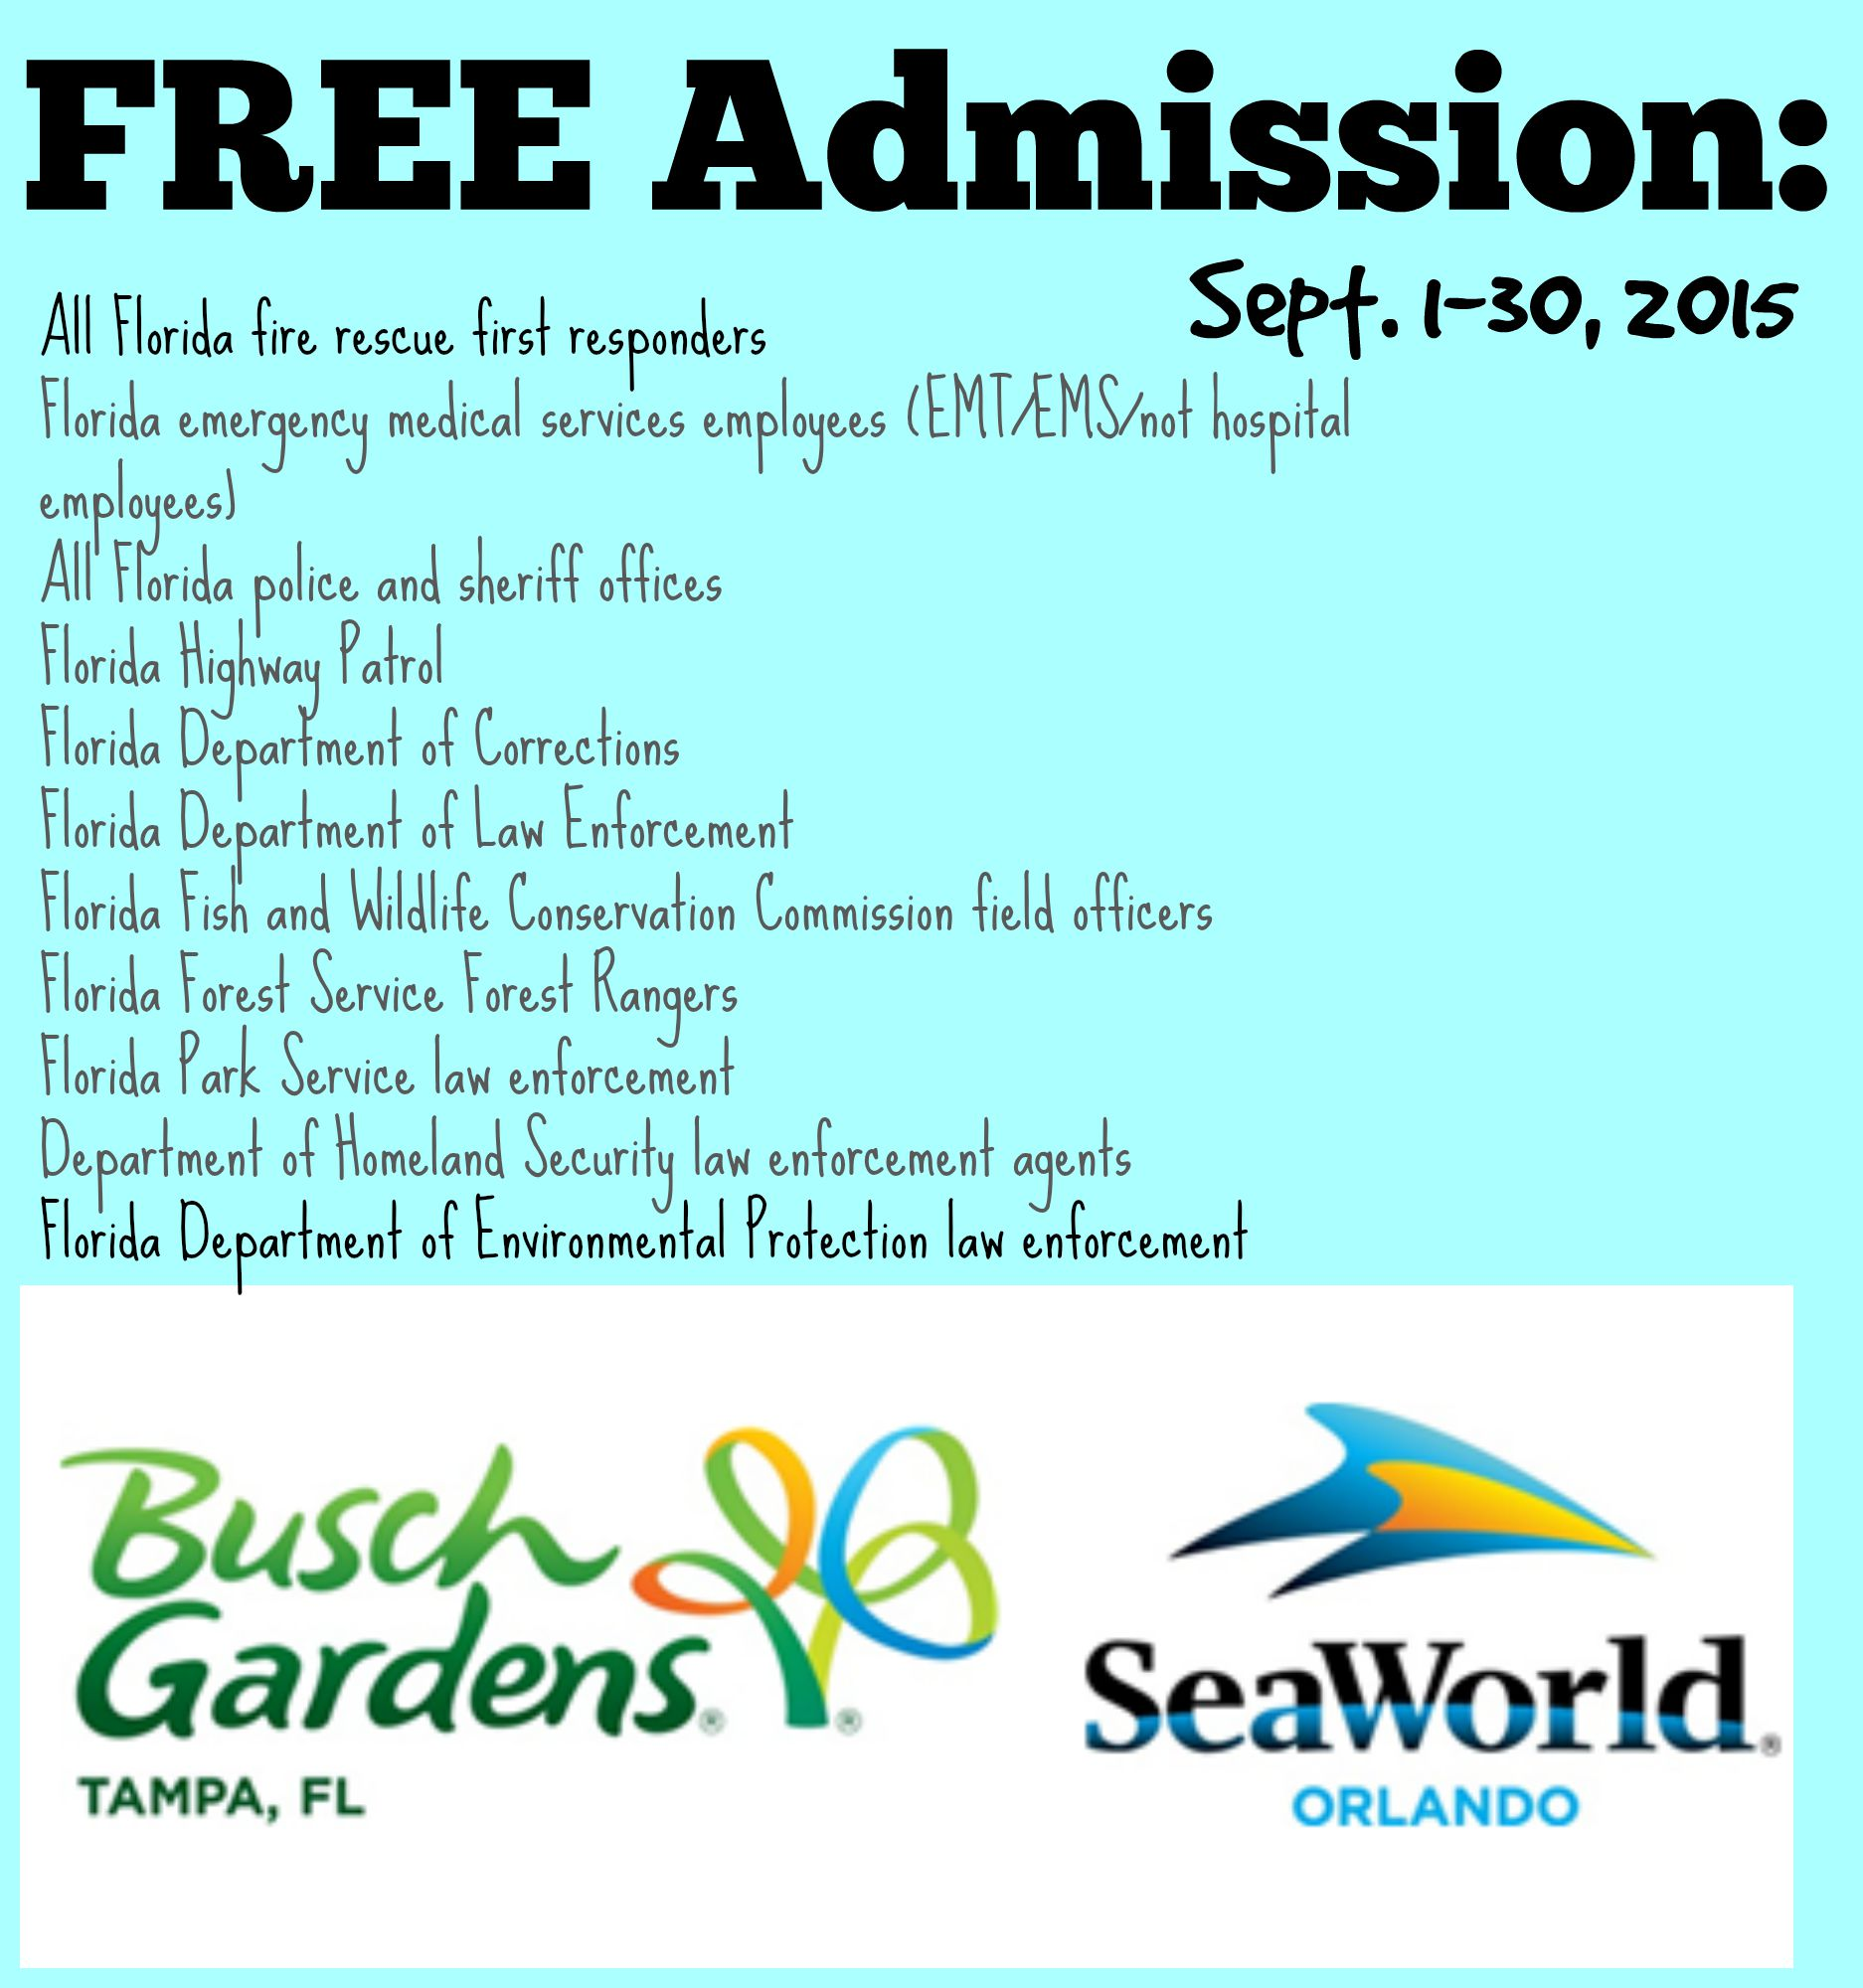 FREE Admission for First Responders - Sea World & Busch Gardens